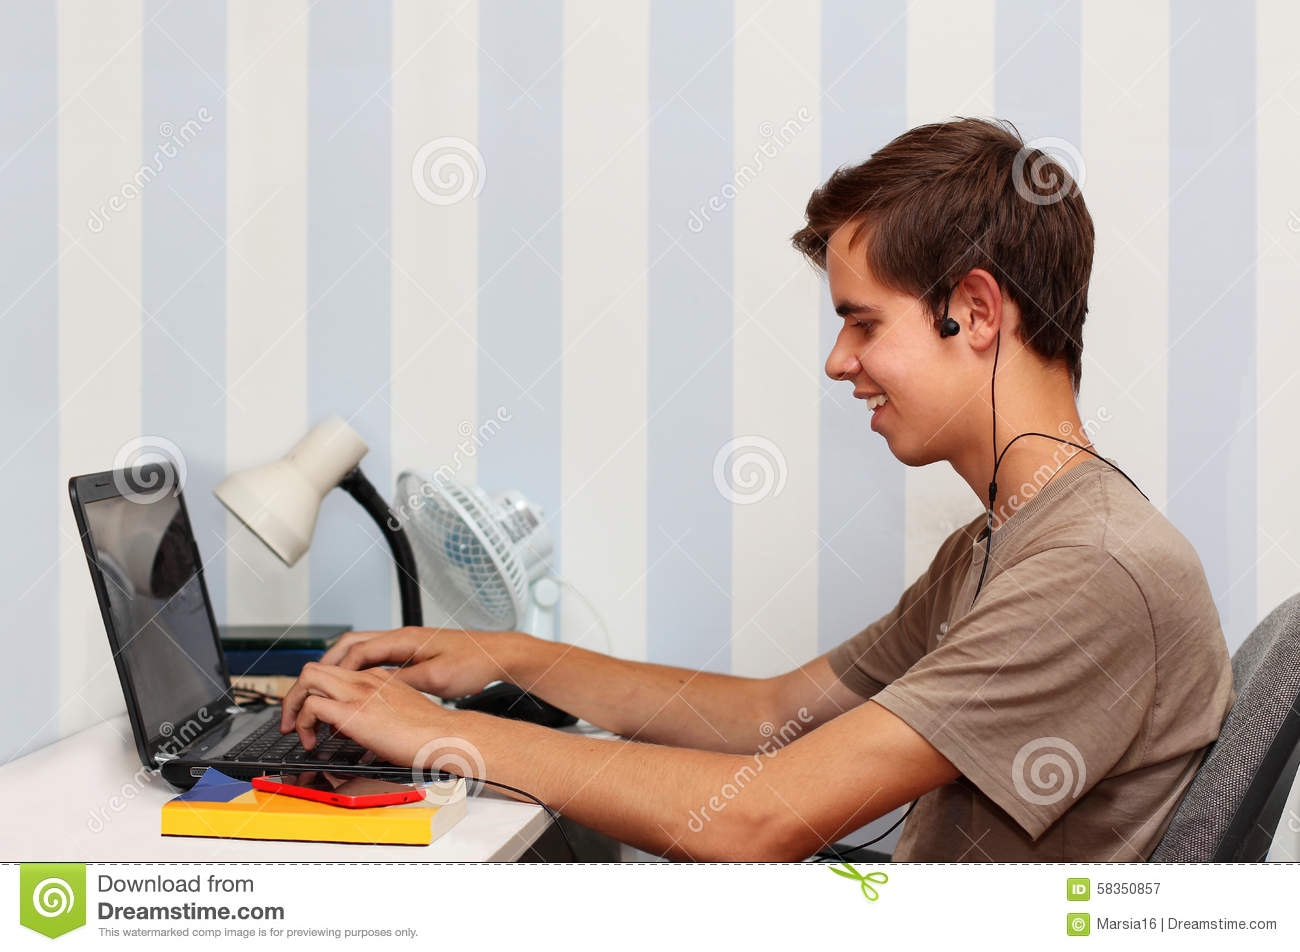 Teenage Boy With The Virtual World Of Internet. Stock Image - Image